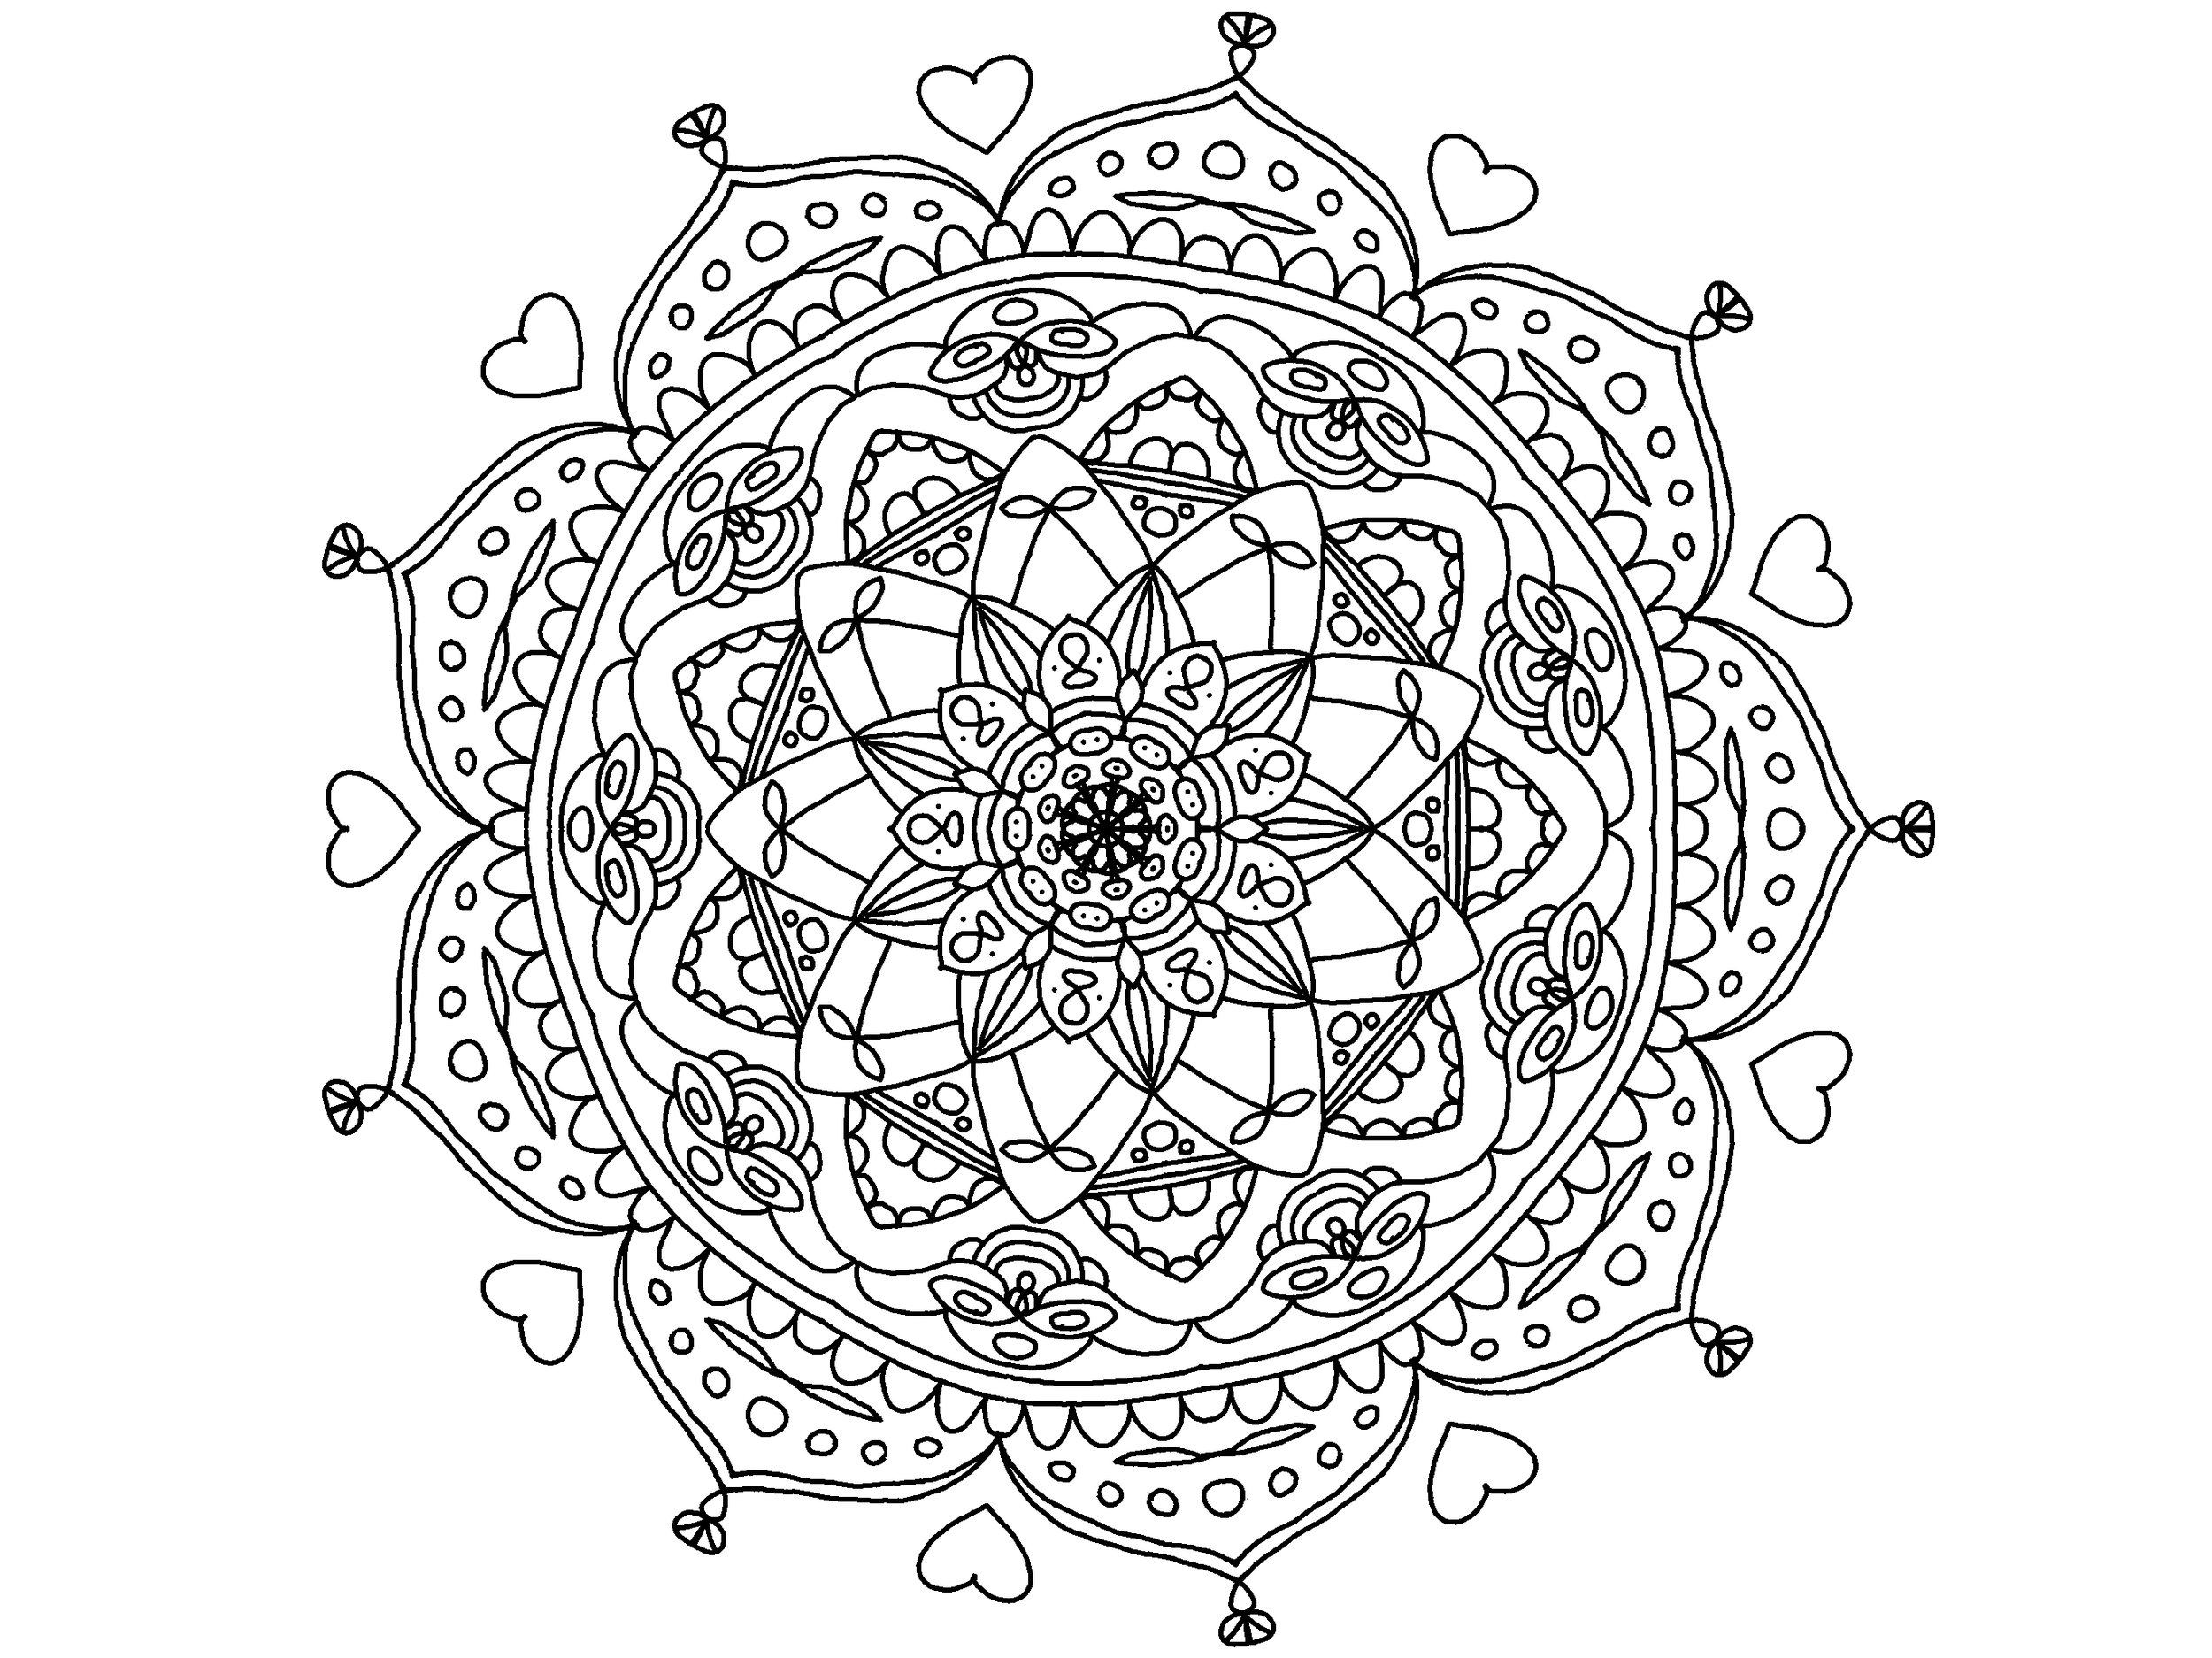 2500x1874 Meditative Coloring Pages Adult Coloring The Lost San Diego